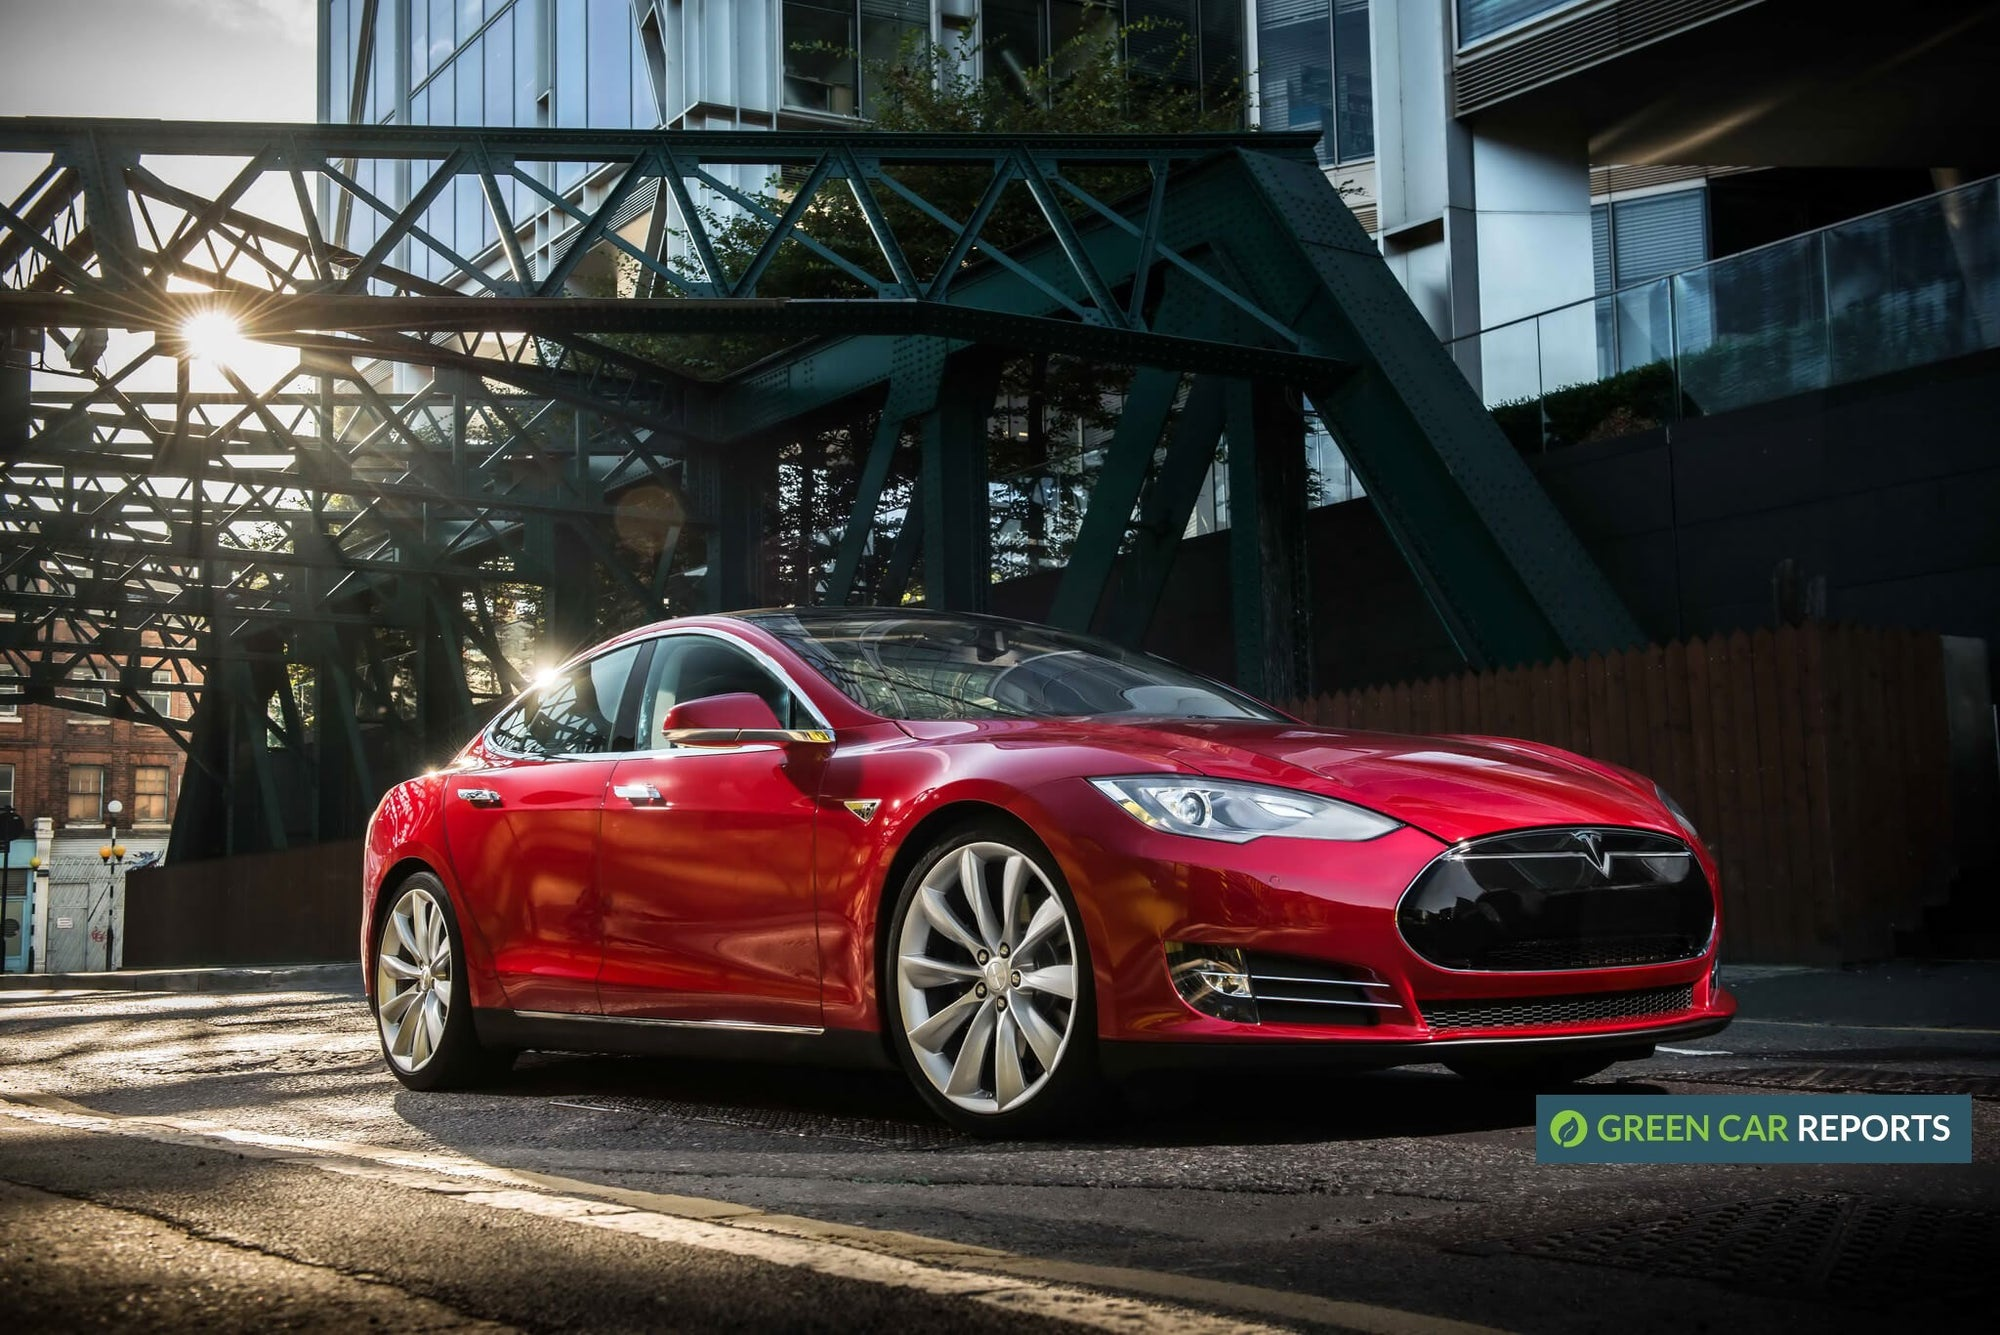 Tesla Model S gets 'Car of the Decade' Award